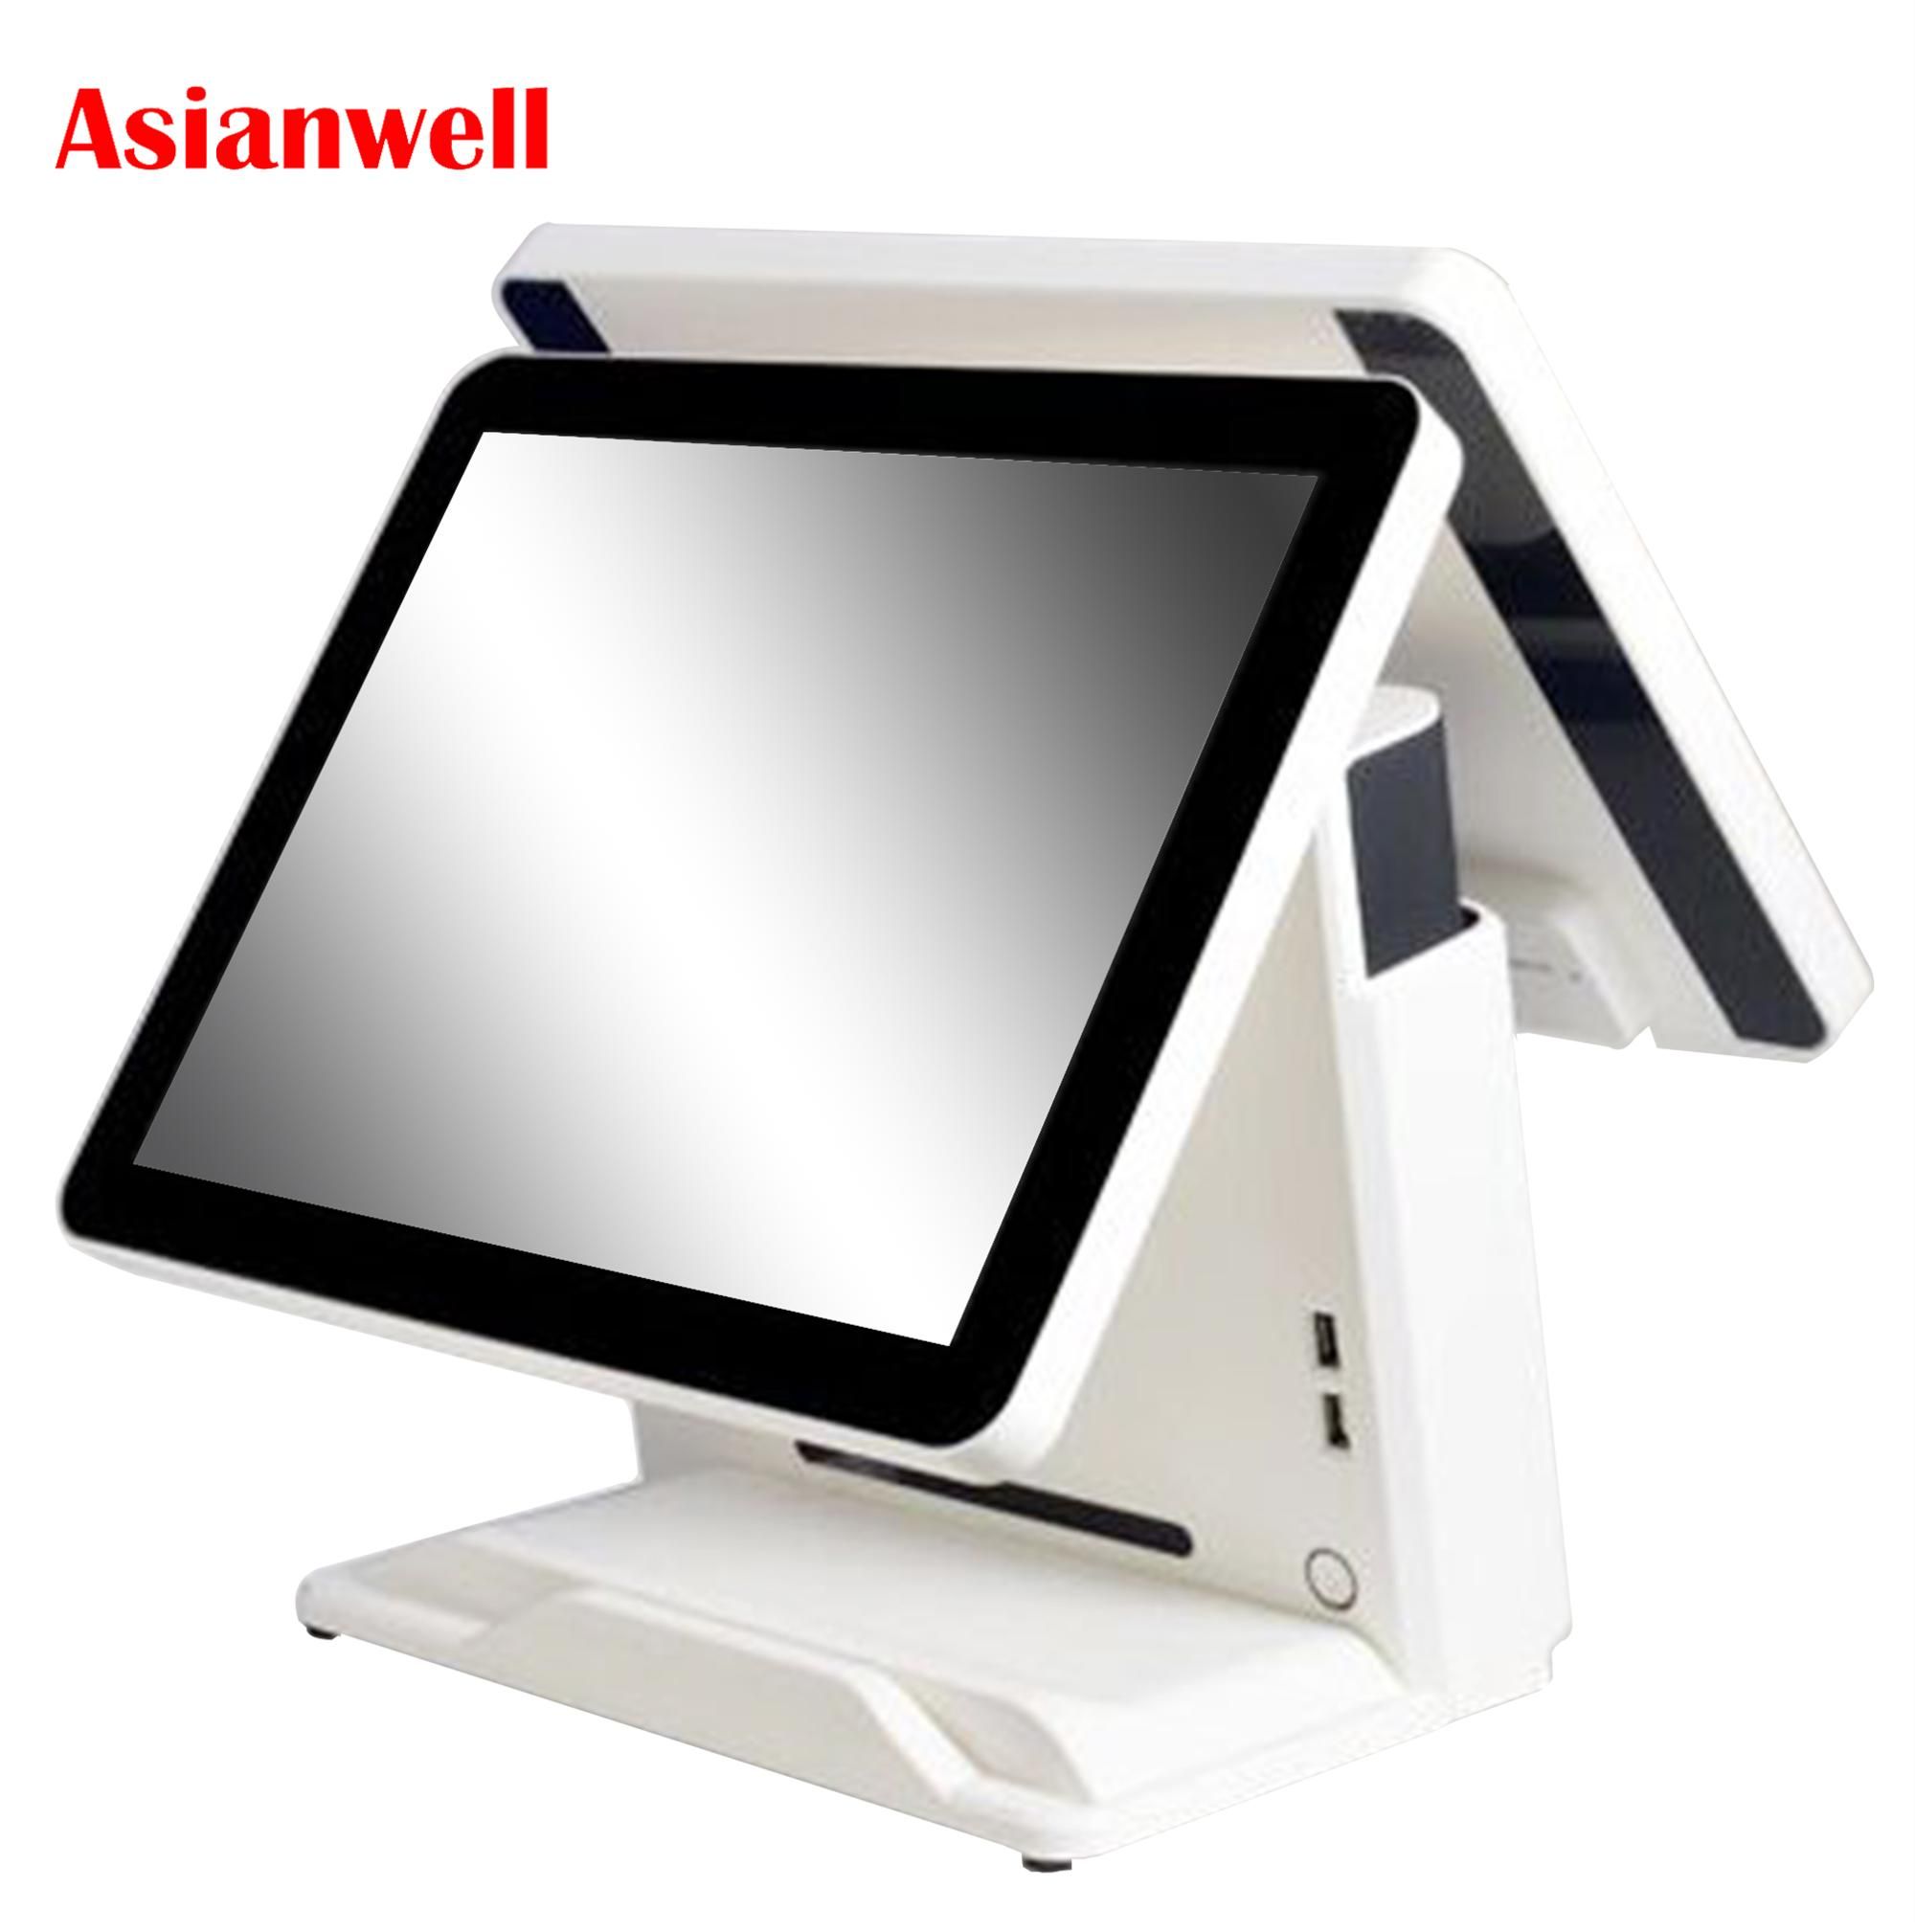 True flat 15inch Computer Terminal Hardware Point Of Sale Restaurant Pos All in One Touch Screen Pos System